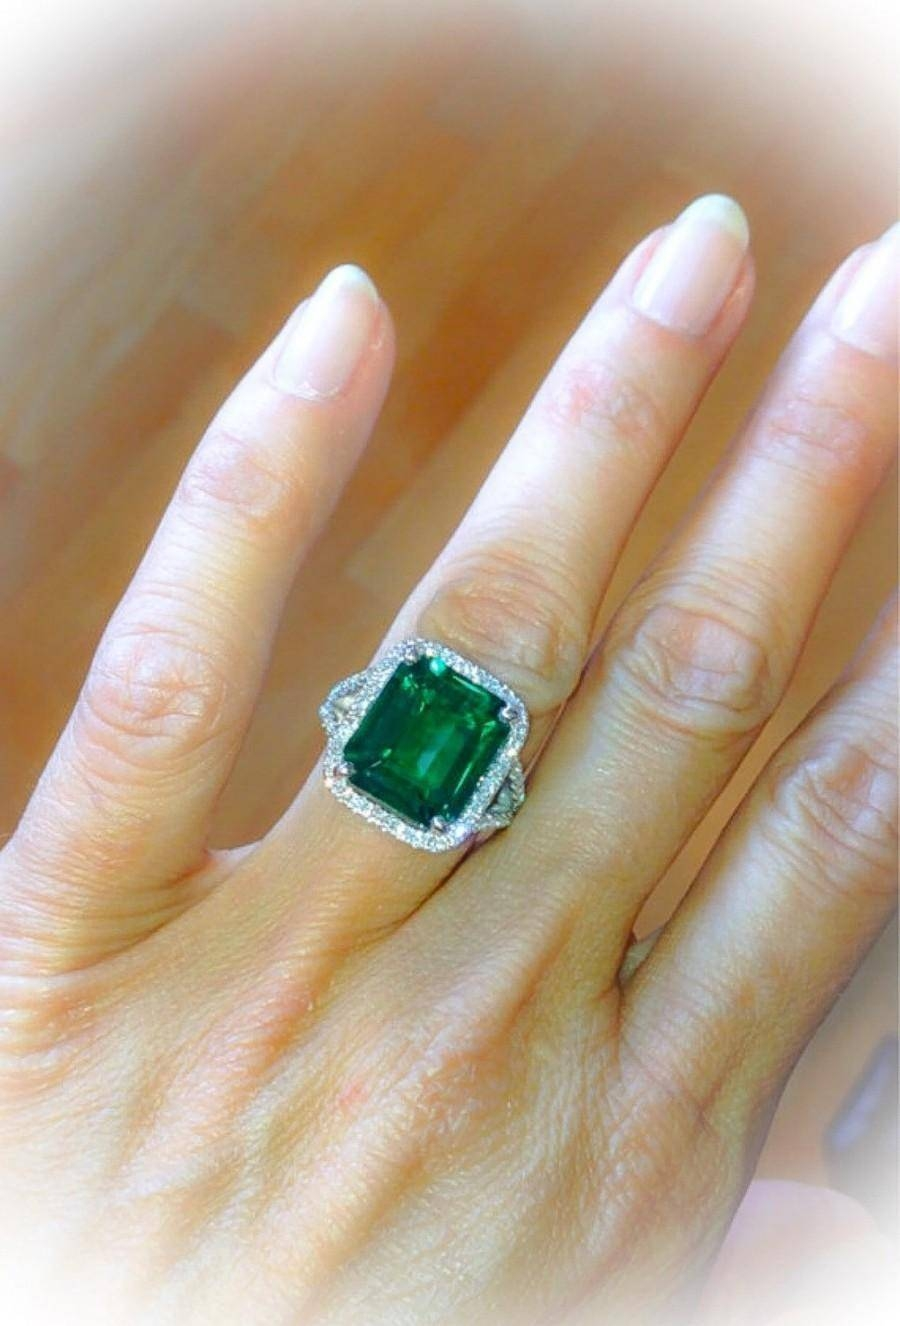 Emerald Engagement Ring Split Shank 18K White Gold 13X11Mm 9Ct With Regard To Most Up To Date Emerald Anniversary Rings (View 12 of 25)